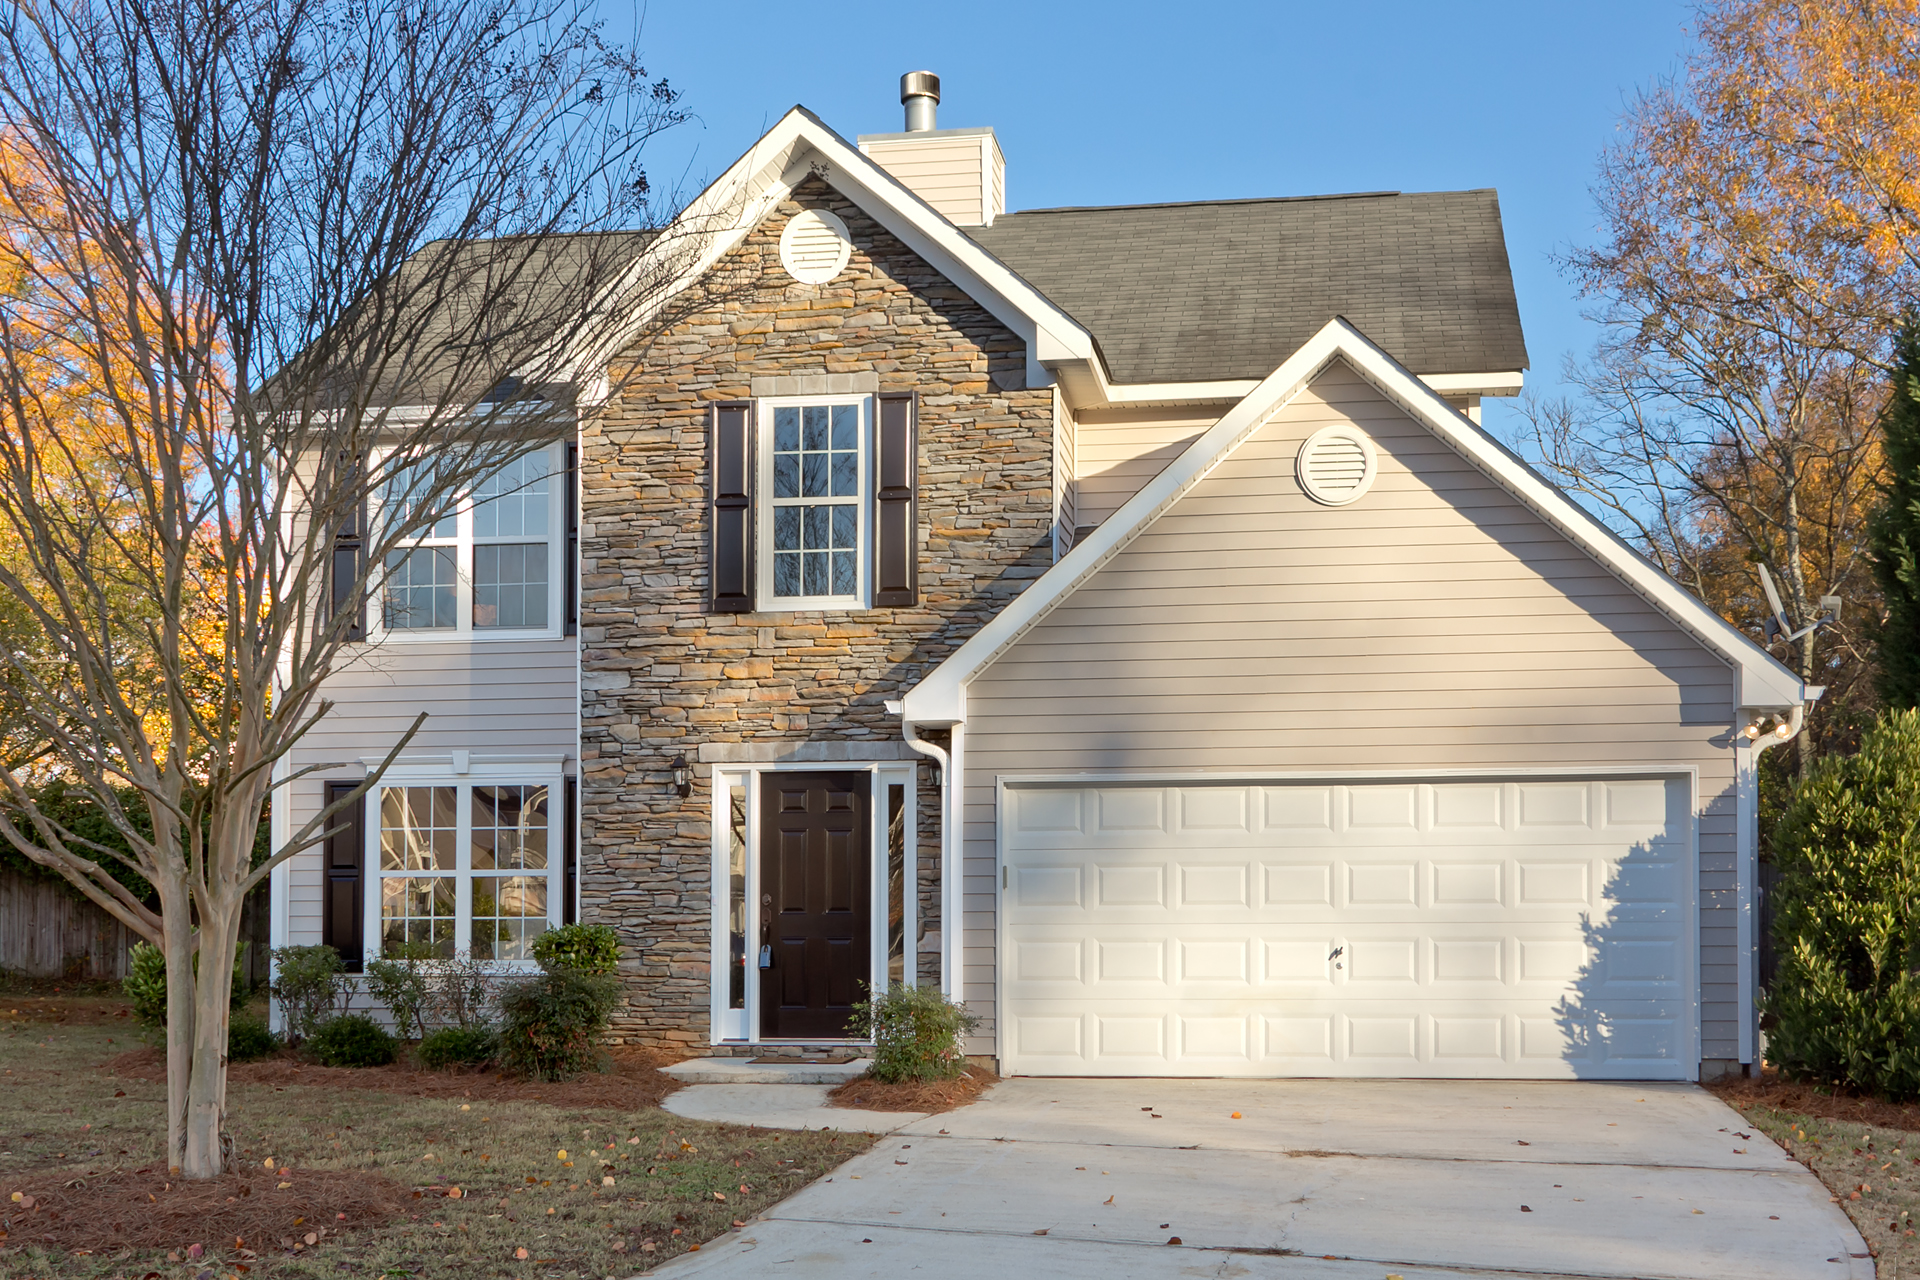 Home for sale in west cobb austell ga real estate for Home accents for sale